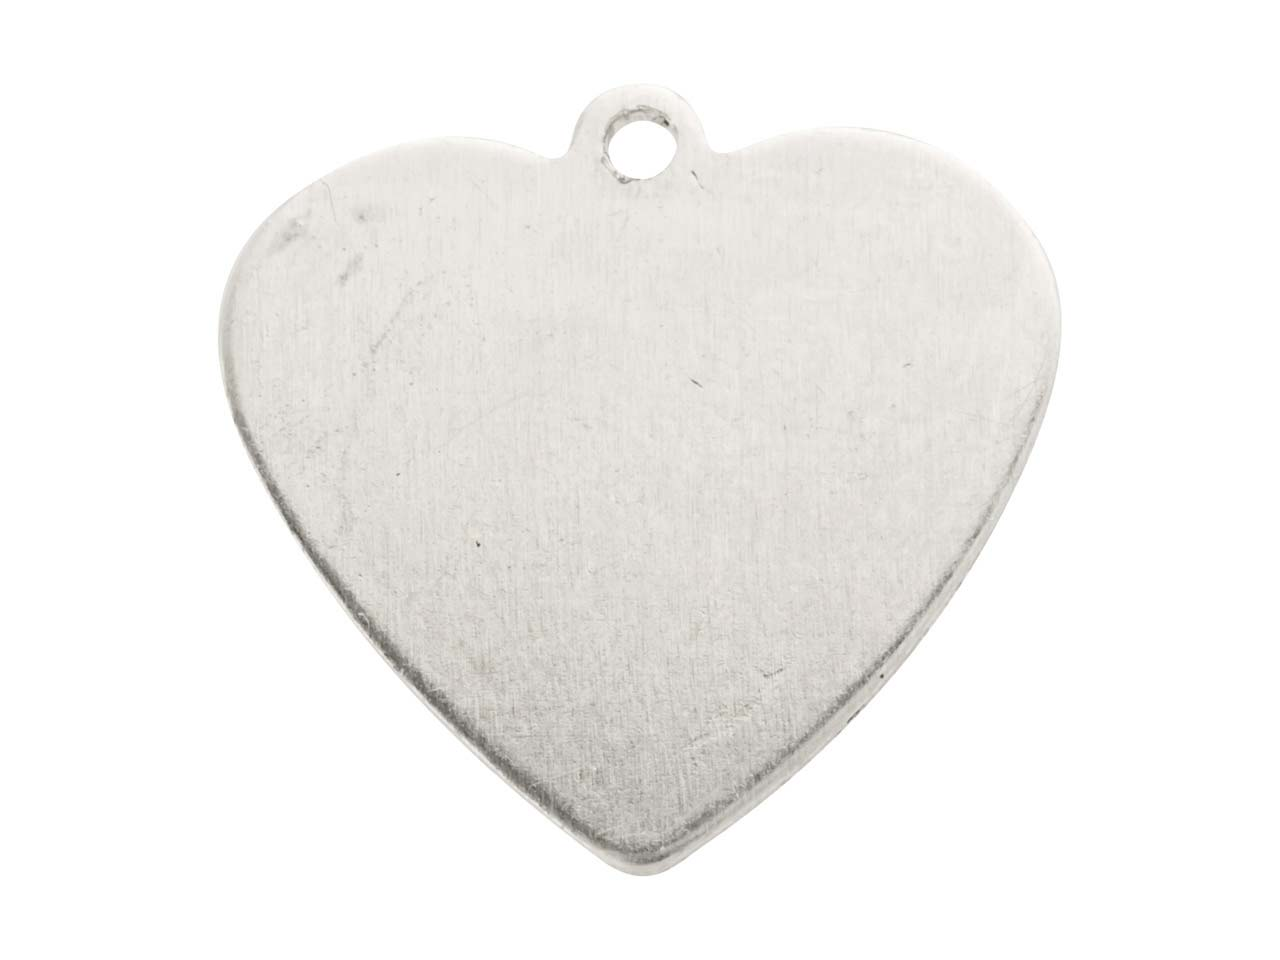 Impressart Aluminium Blanks Heart  15.9mm X 0.8mm, Pack of 20 Pierced Top Ring